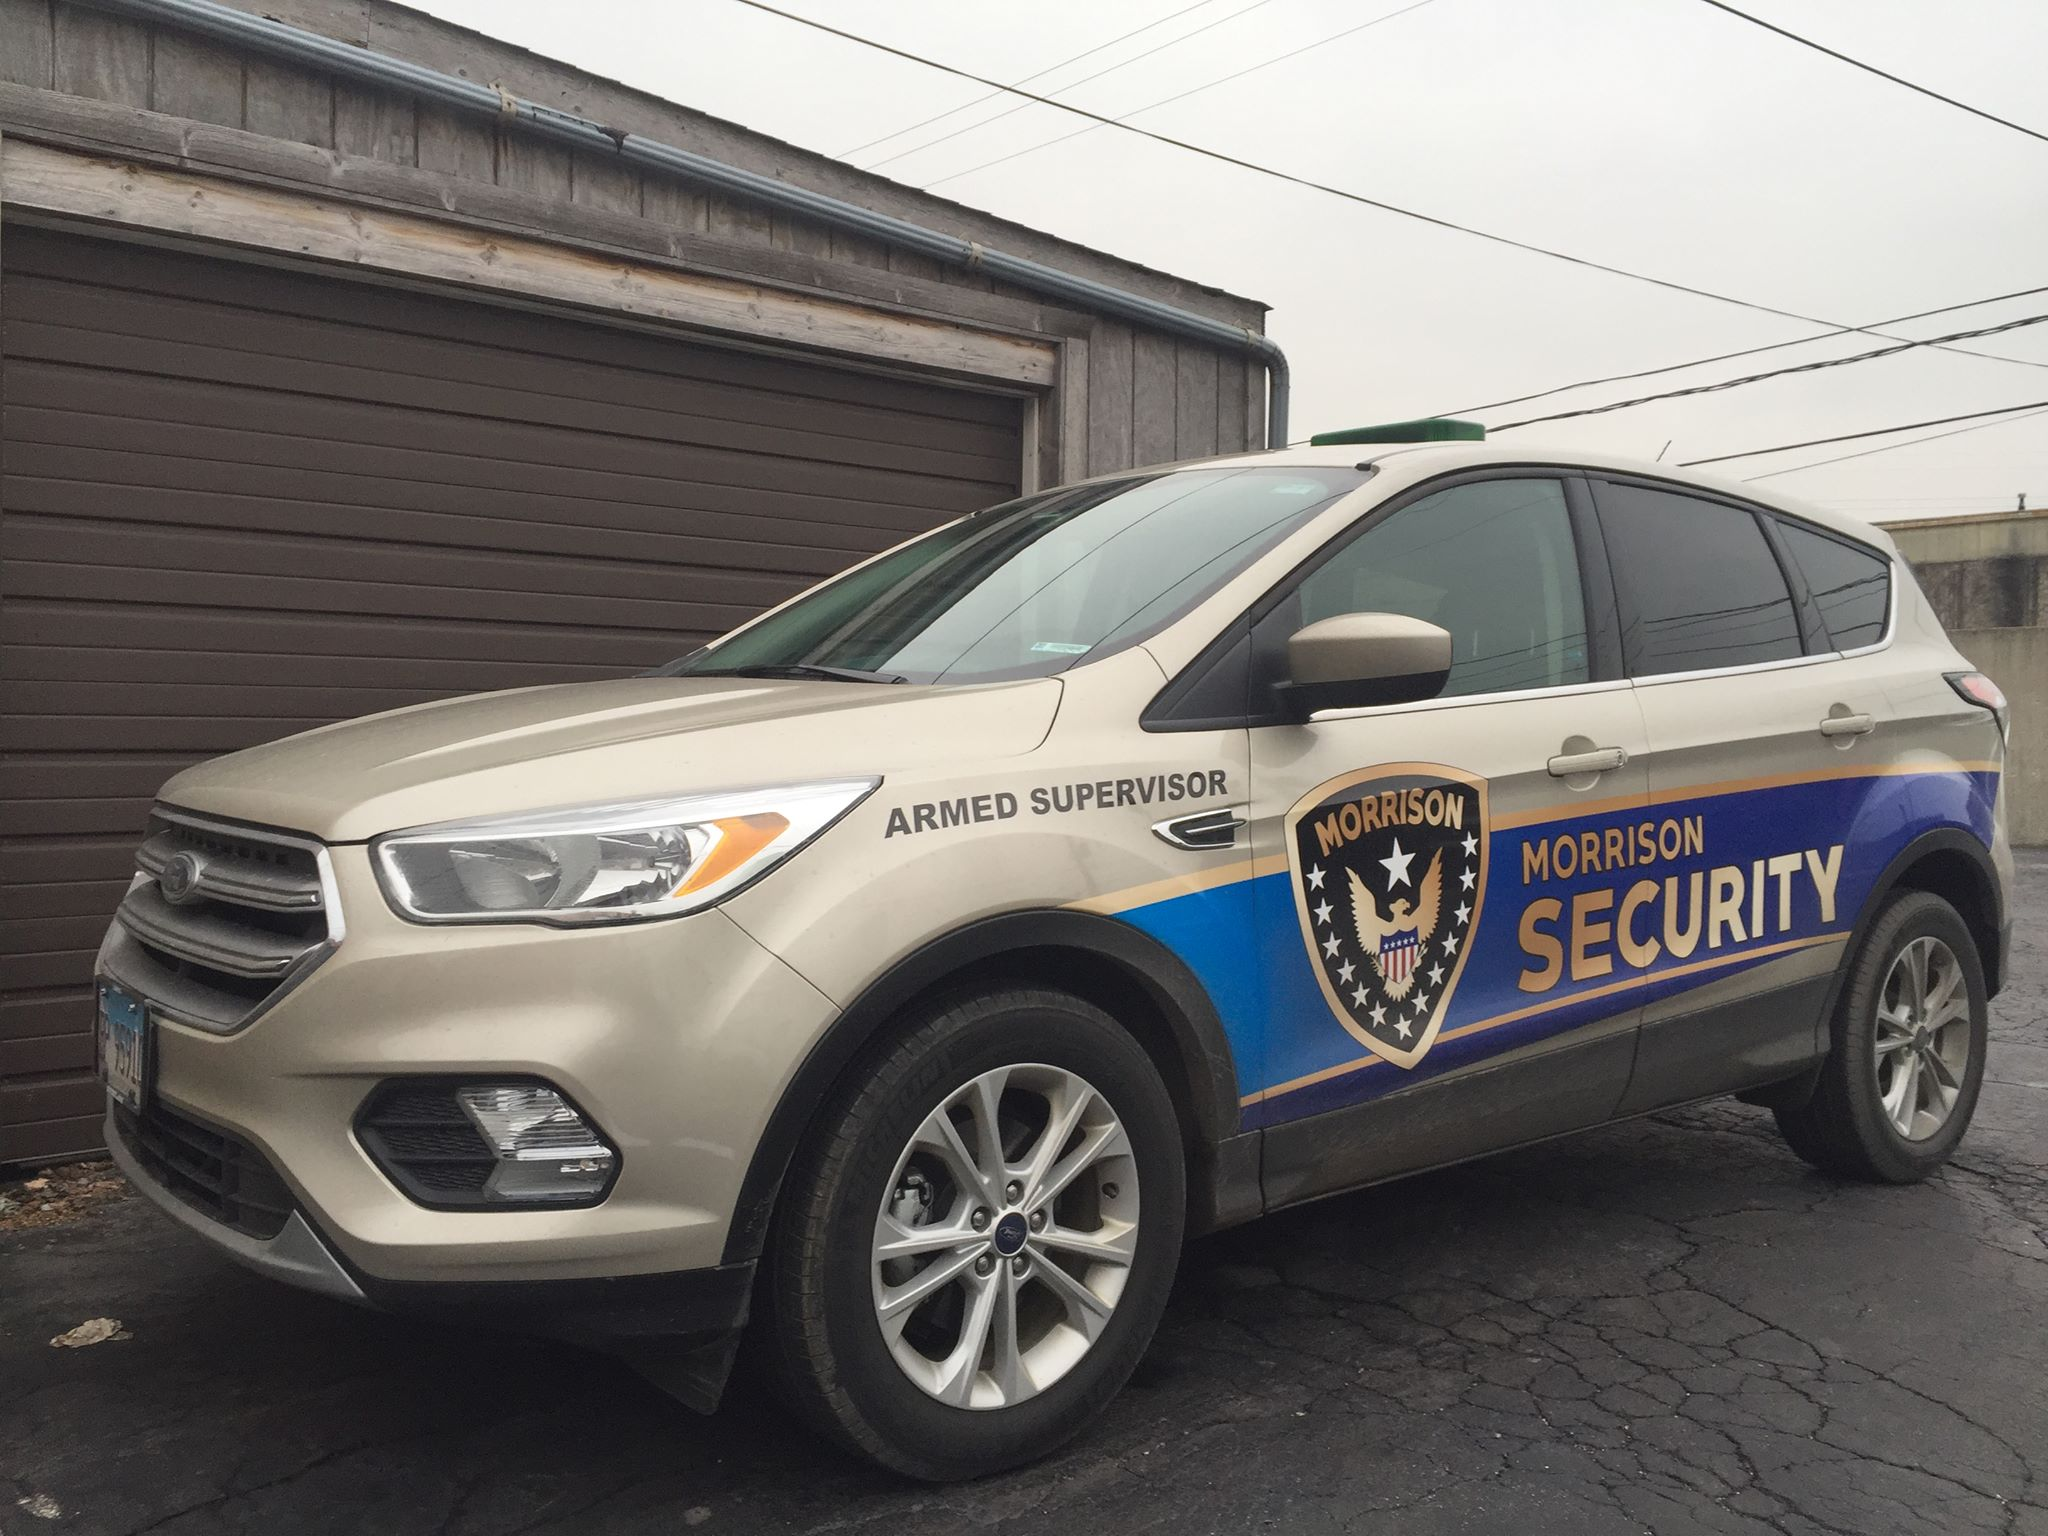 Morrison Security Armed Supervisor Patrol Vehicle